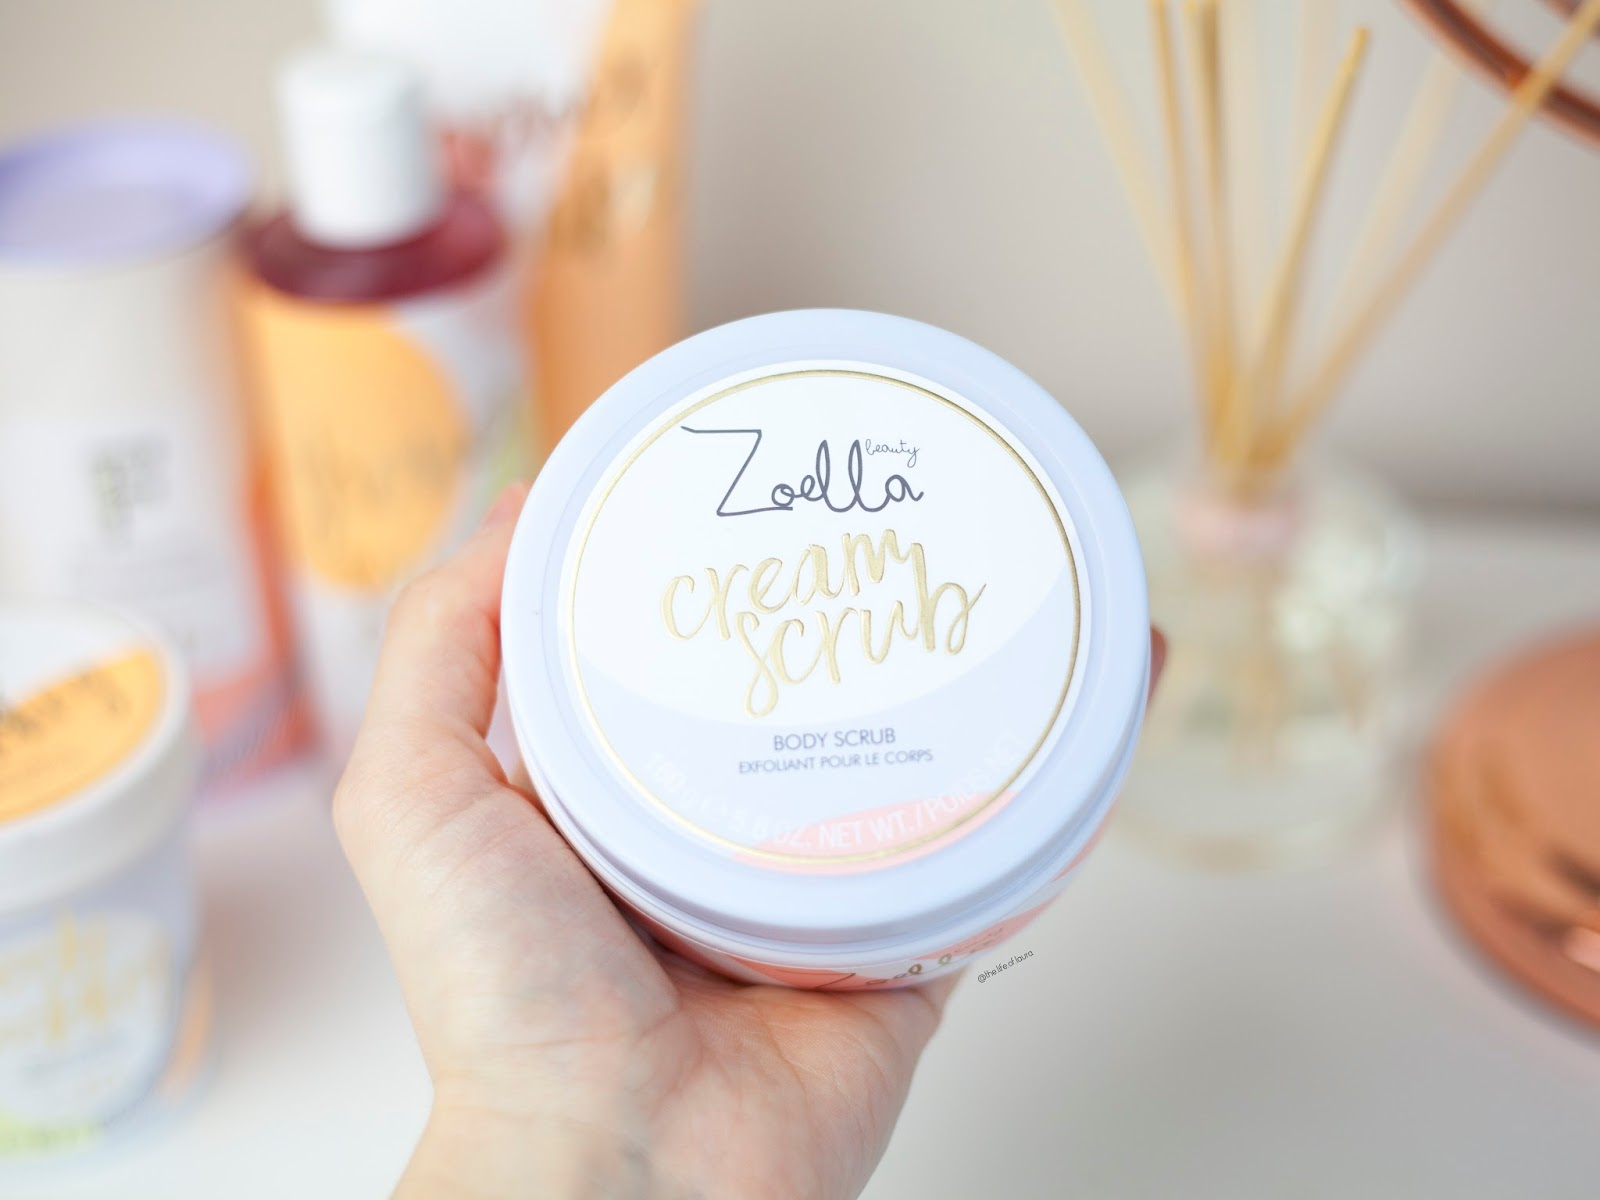 Zoella Jelly and Gelato Creamy Scrub